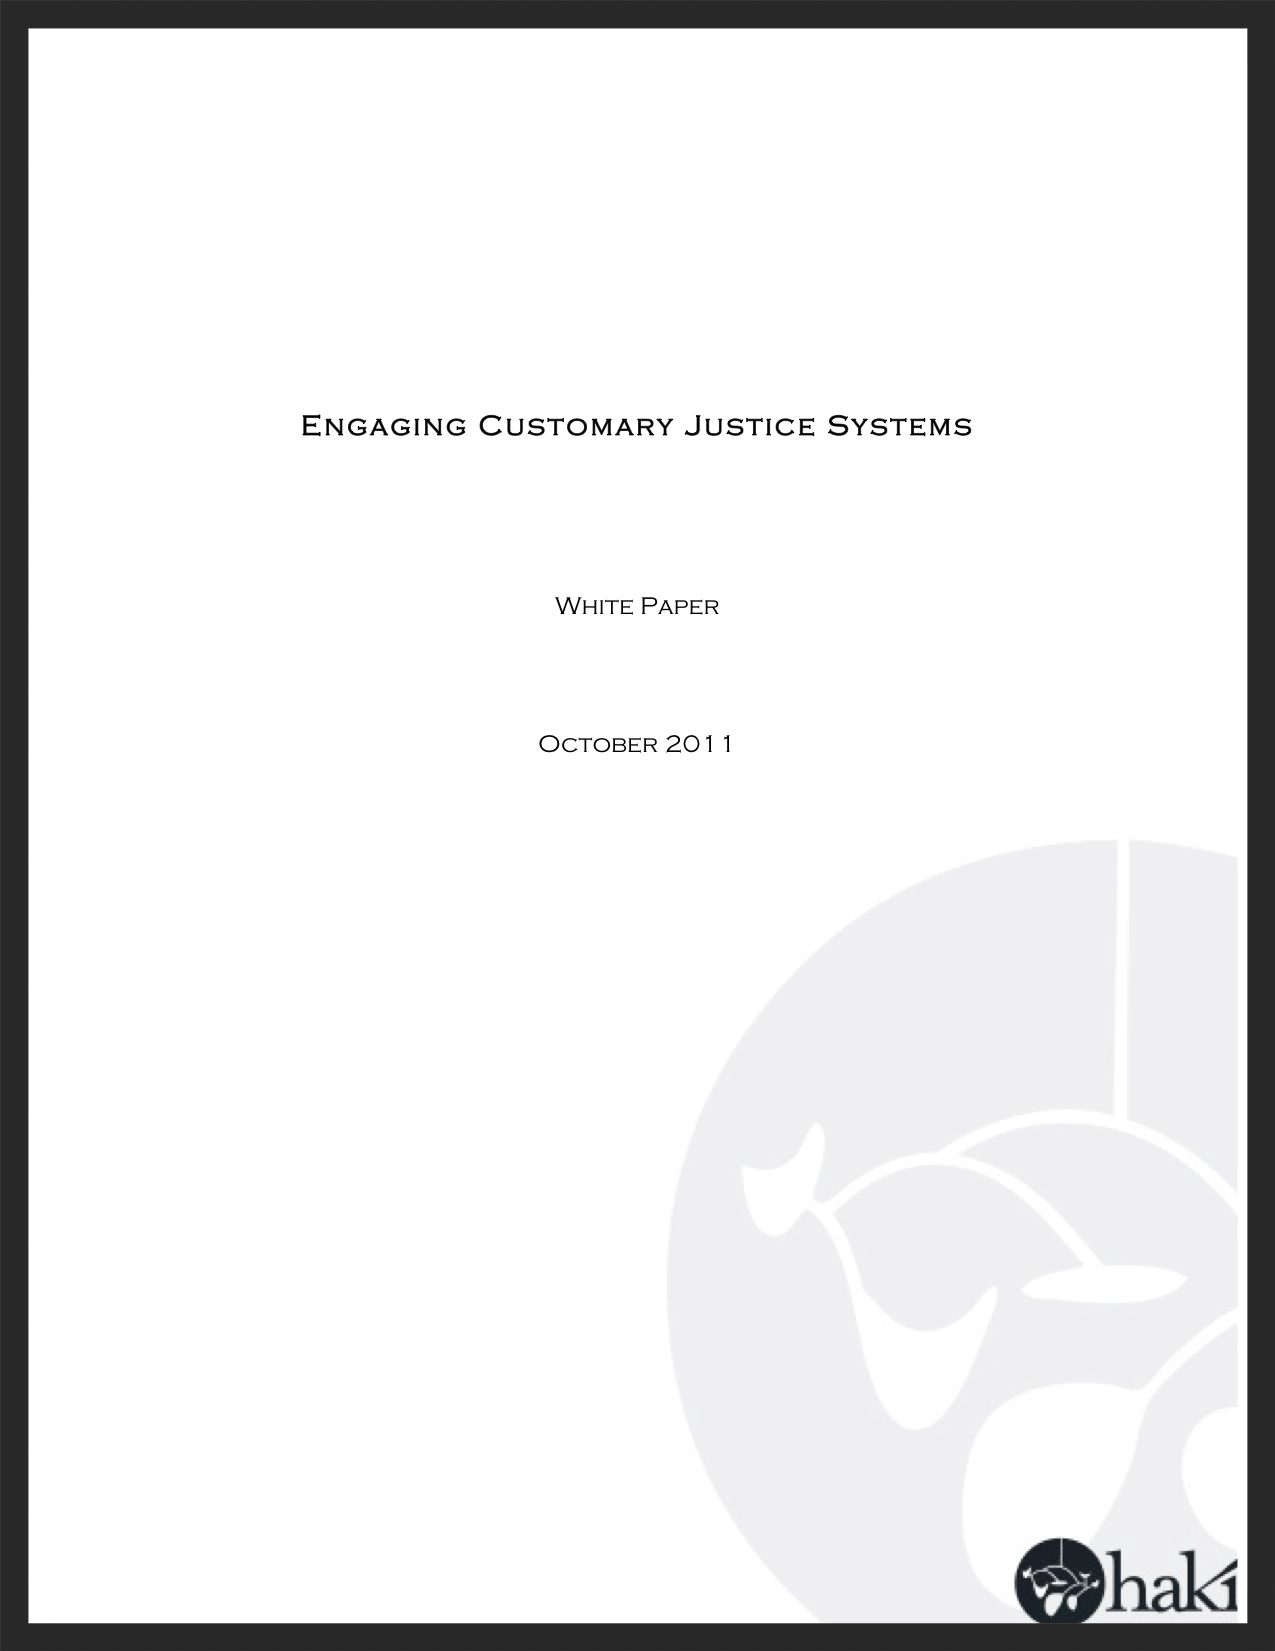 Haki Customary Justice White Paper